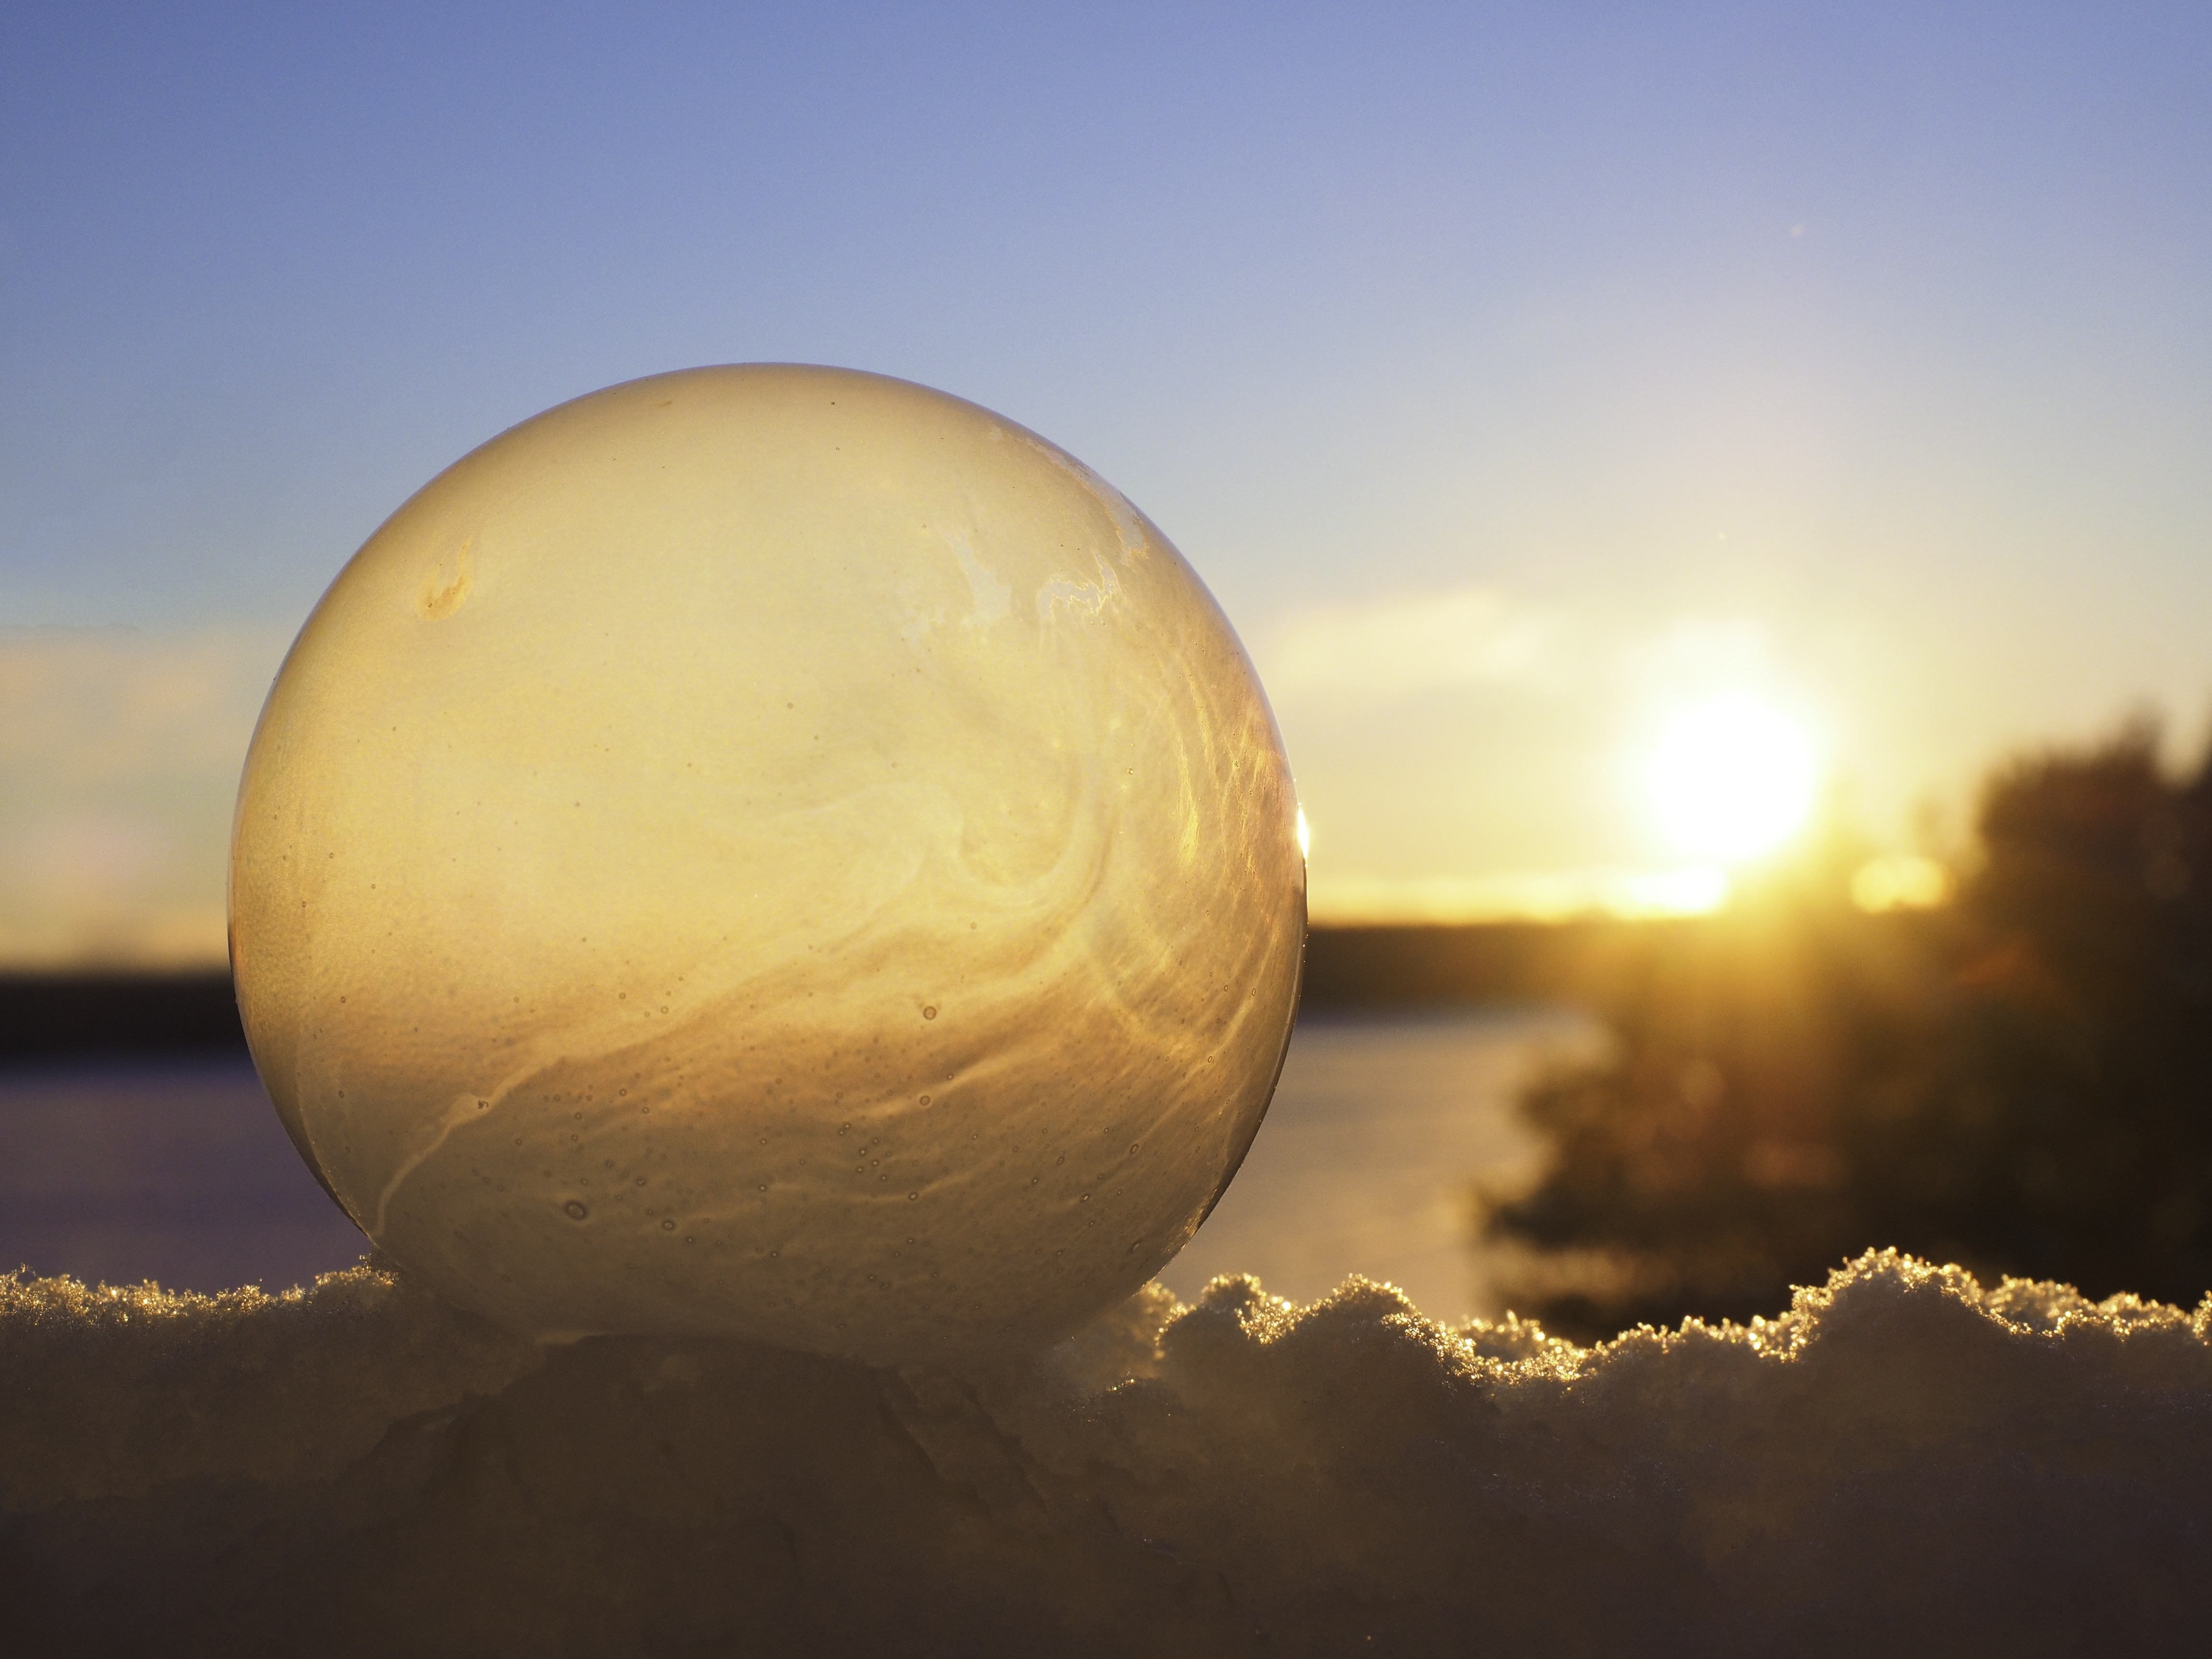 Winter Photo Project: Frozen Bubbles Golden Orb